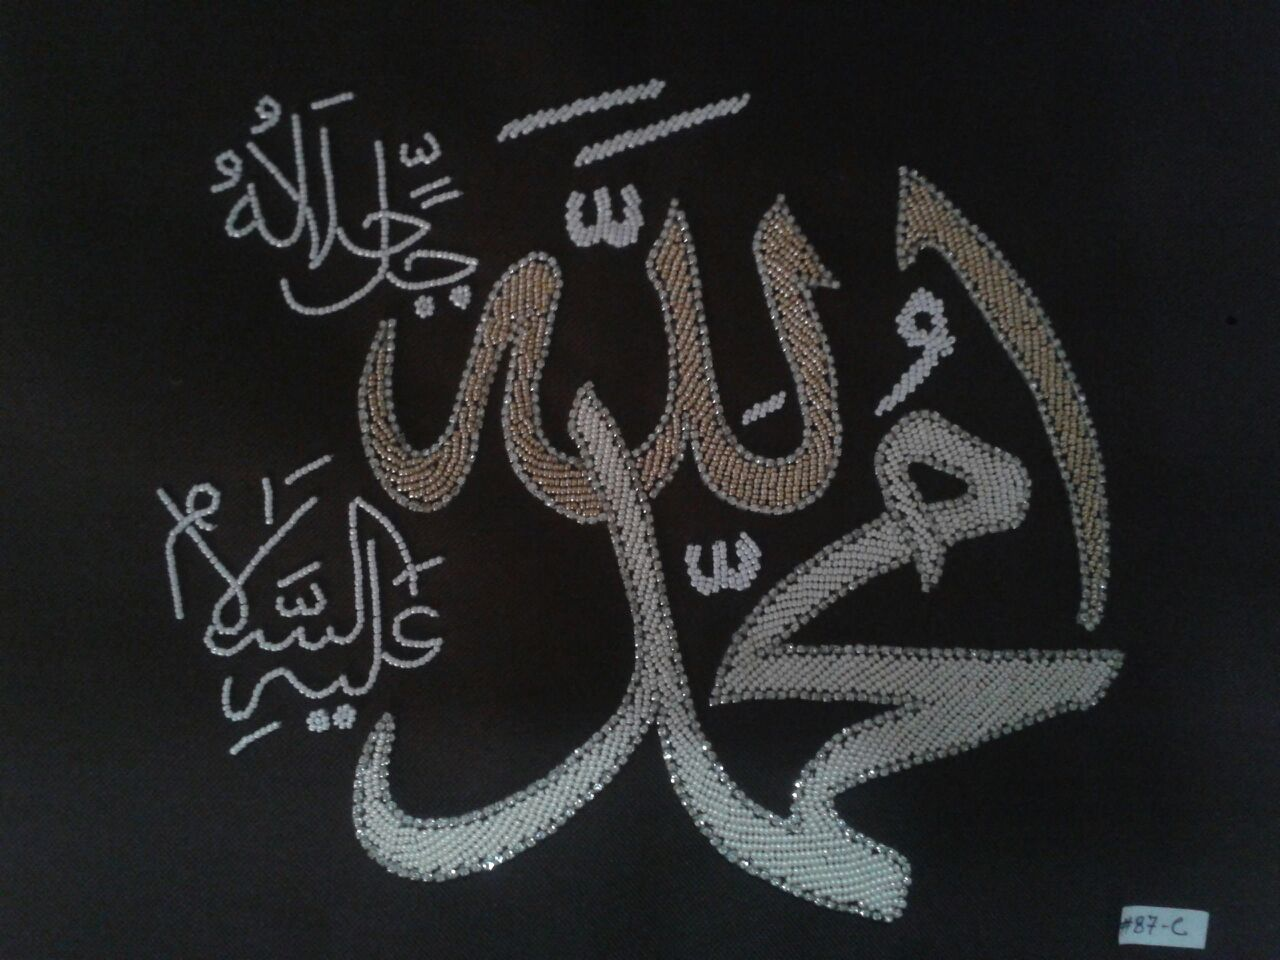 Islamic Calligraphy On Fabric Allah Muhammad K5 87 C